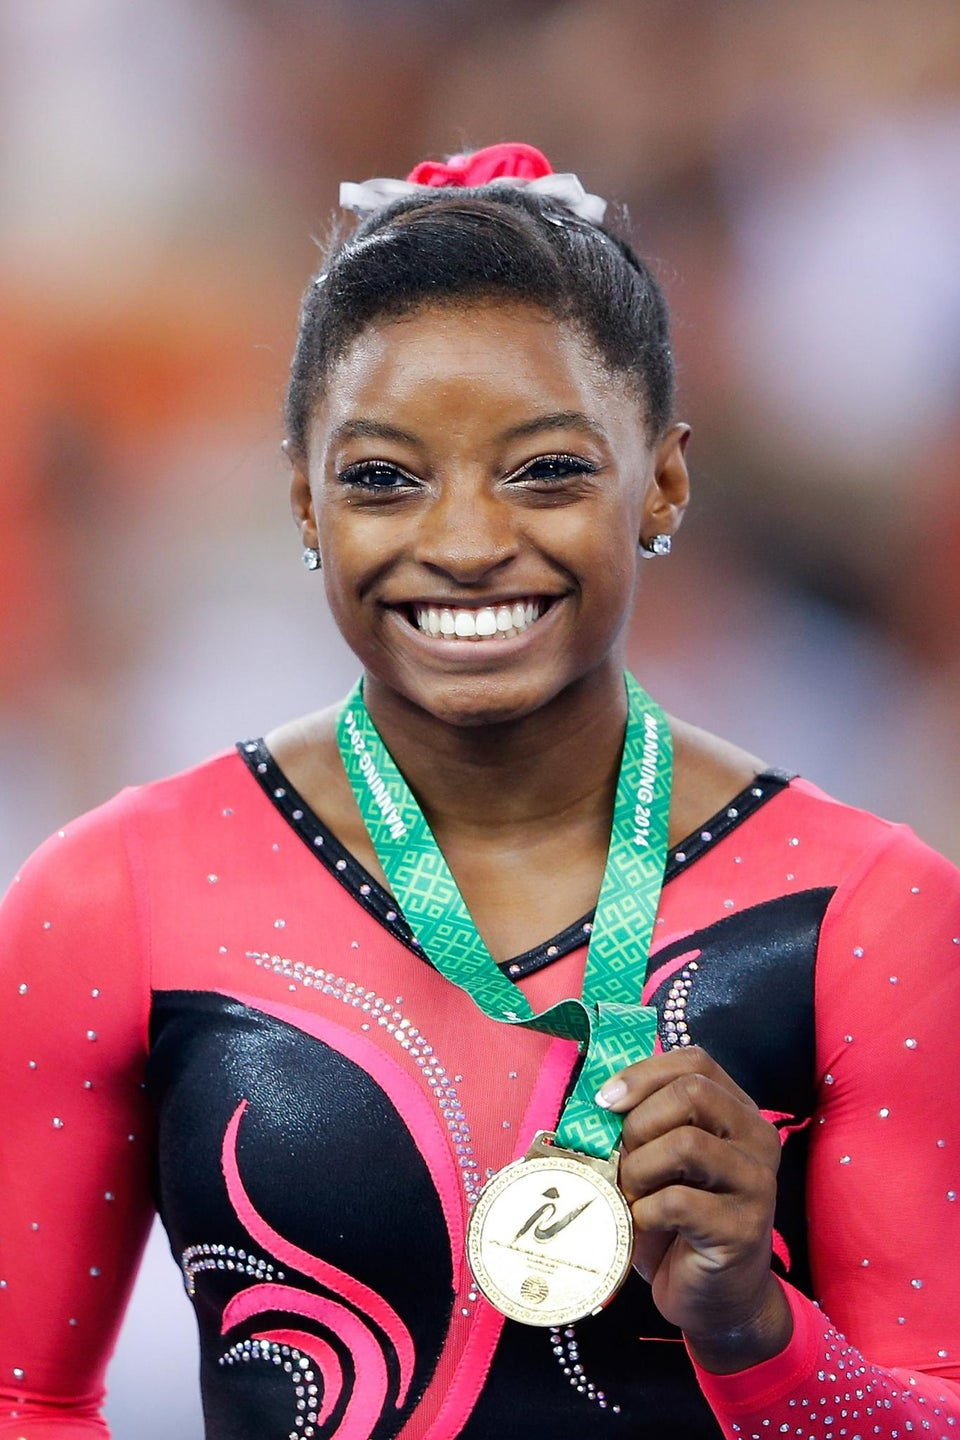 Simone Biles' Celebrity Crush Is Now Her Biggest Fan, Can You Guess Who?